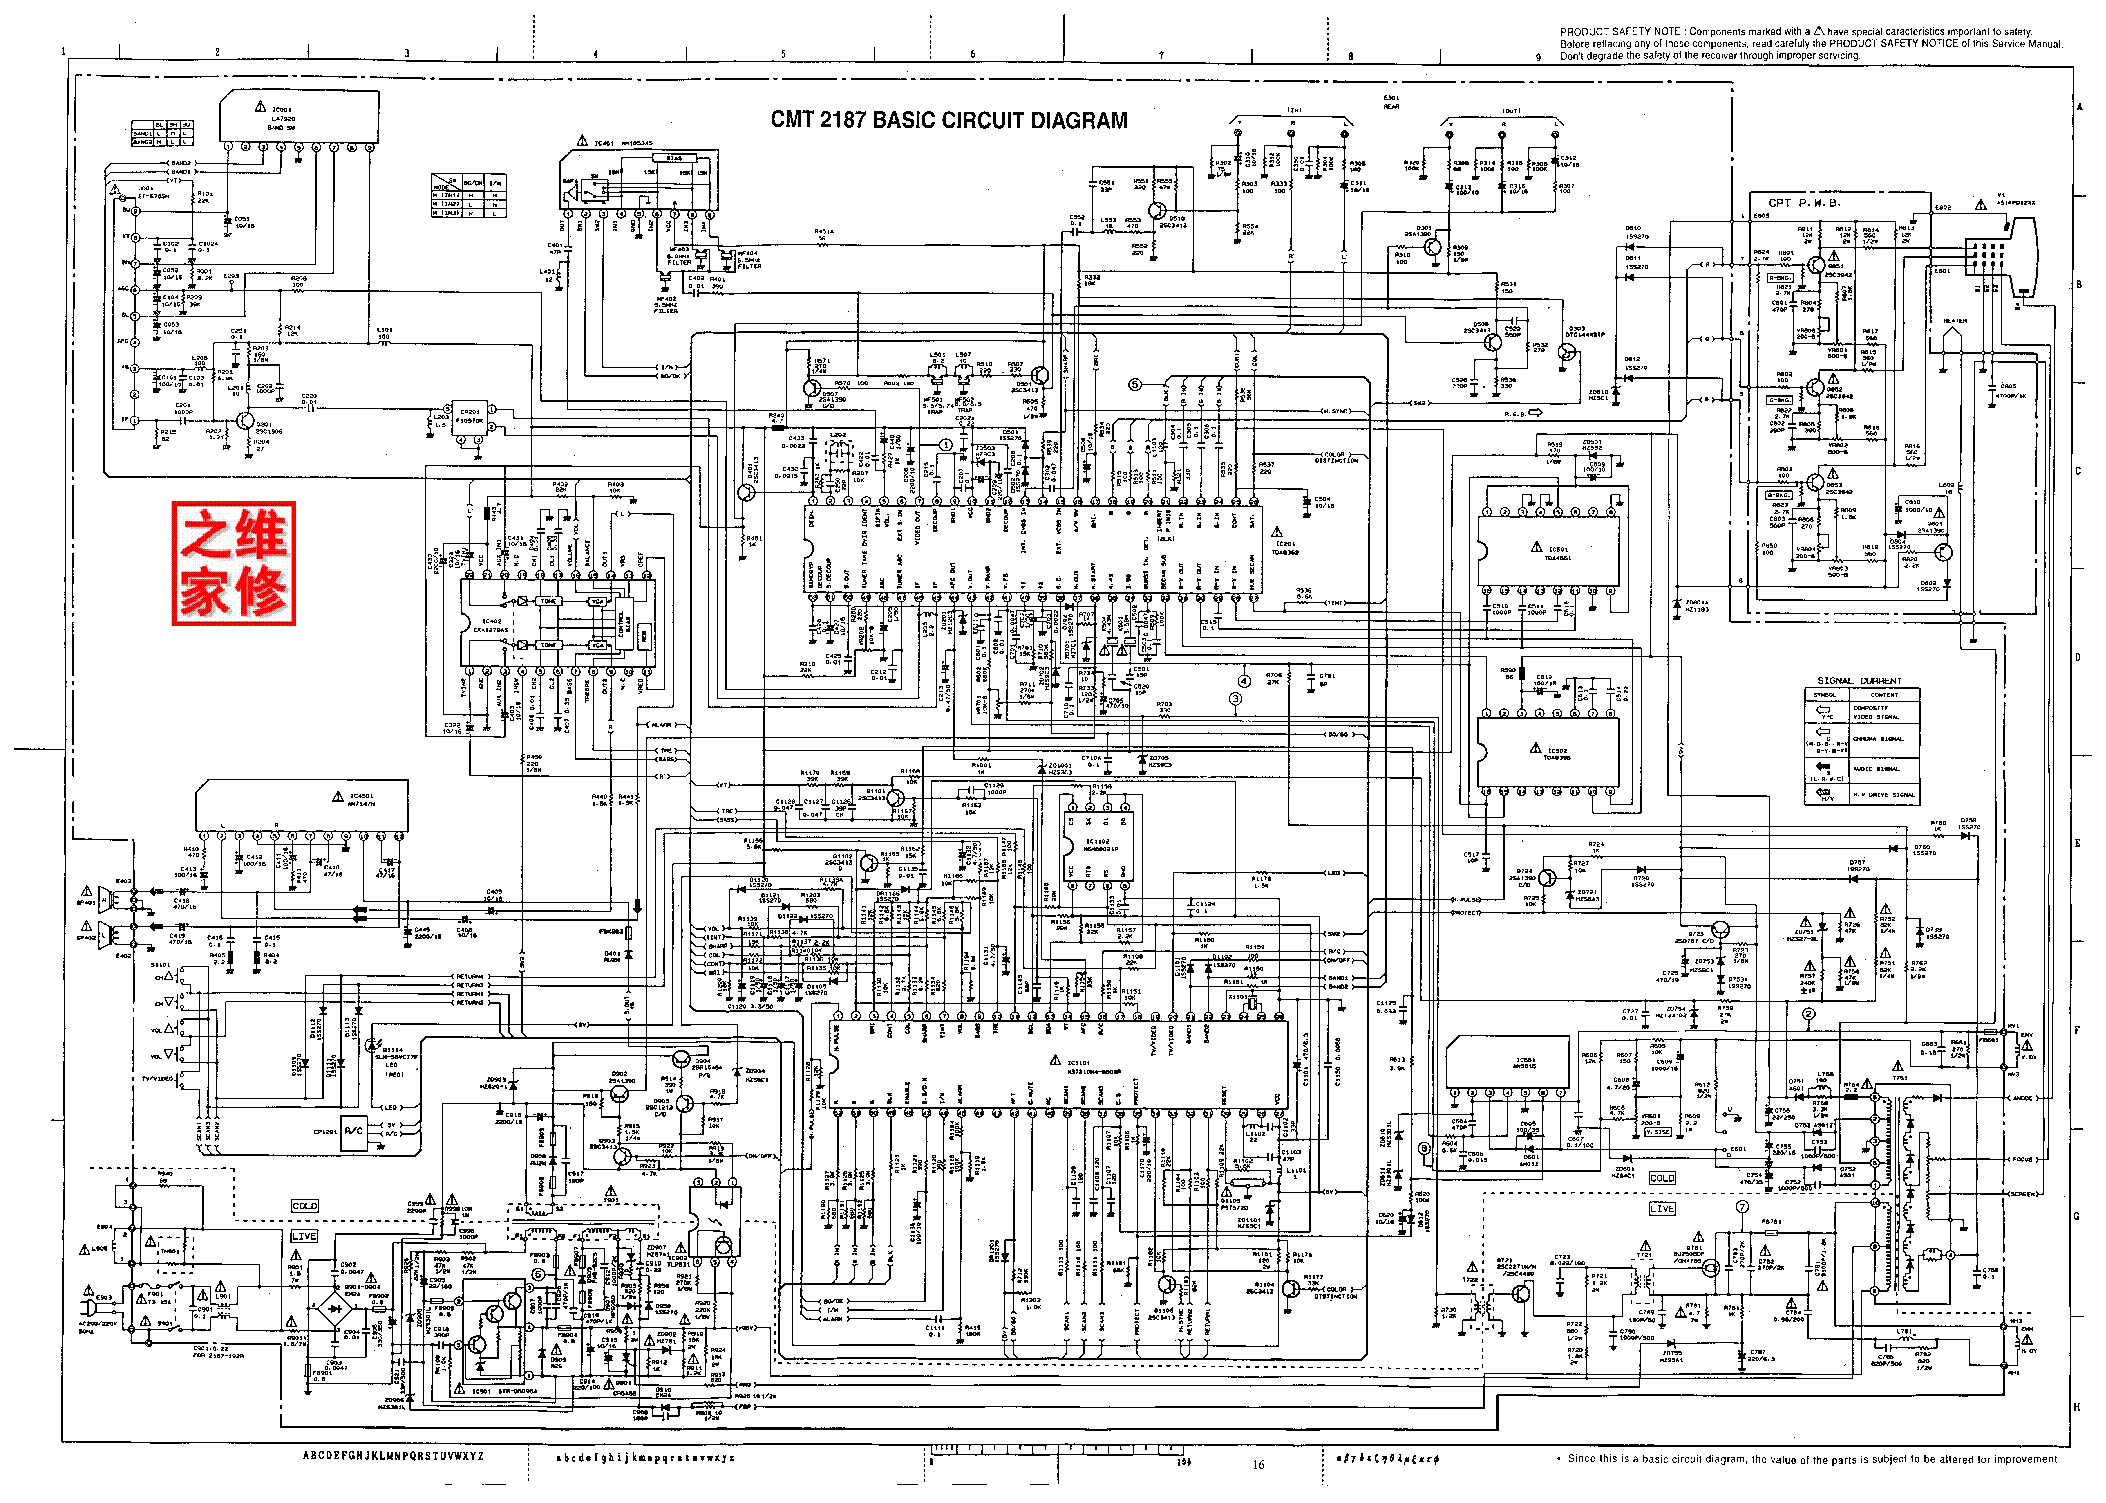 Hitachi Washing Machine Wiring Diagram Control Of Pdf Cmt2187 Basic Circuit 1 Service Manual